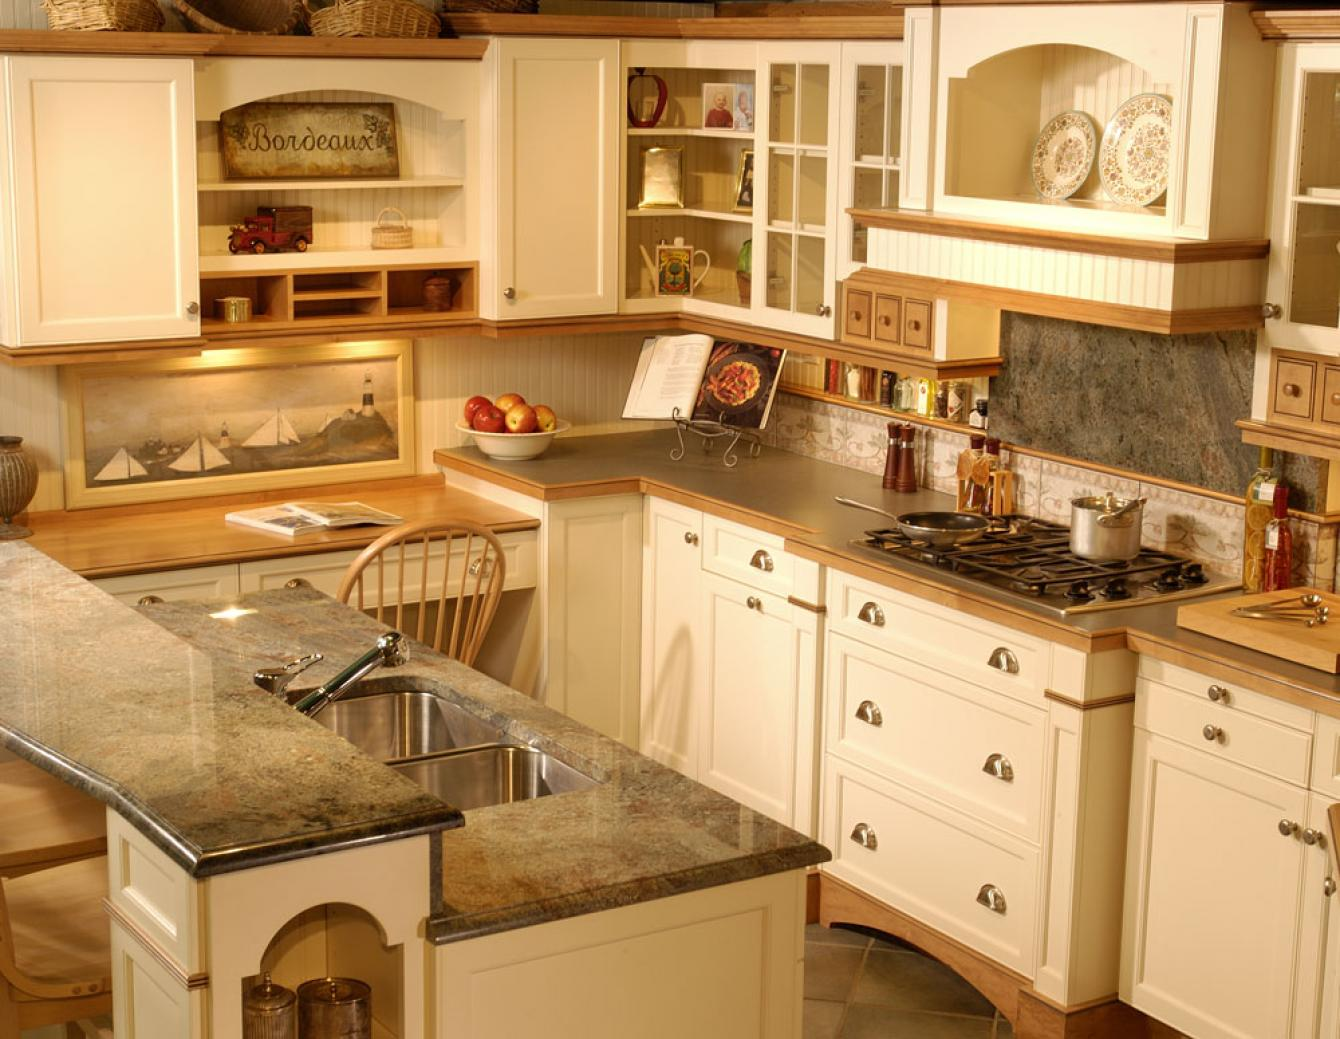 Rustic Kitchen Designs Photo Gallery breathtaking rustic kitchen designs photo gallery ideas - today